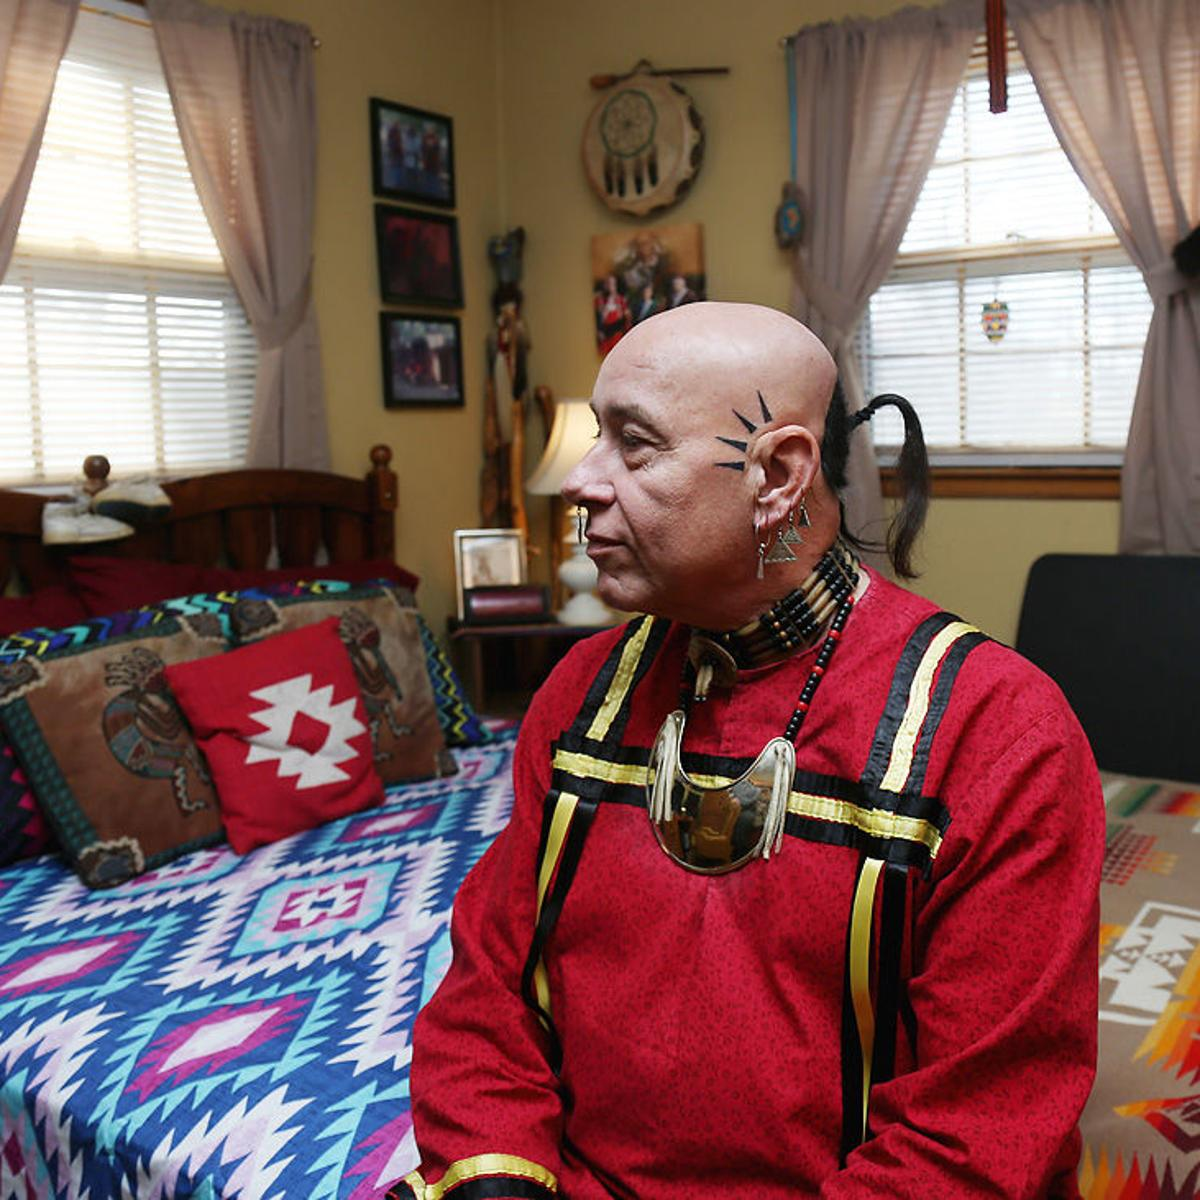 Native Americans find ways to sustain their heritage in